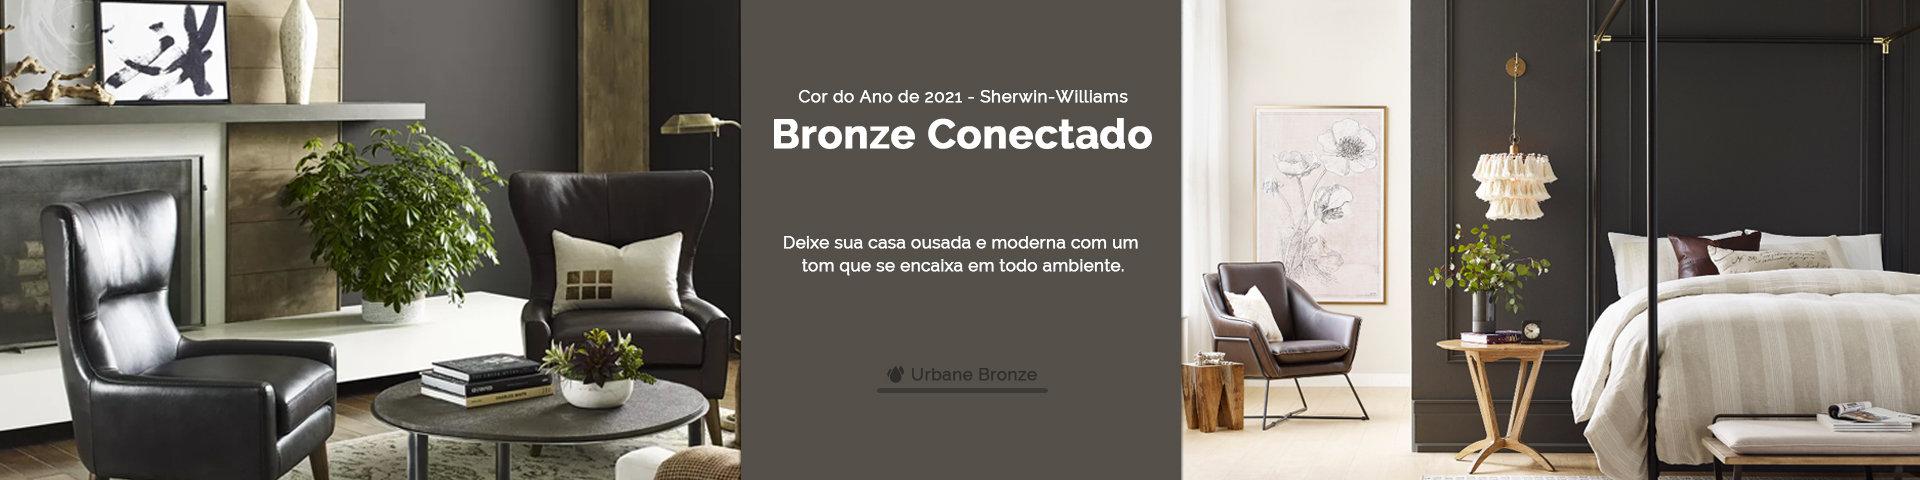 Cor do Ano Sherwin Williams